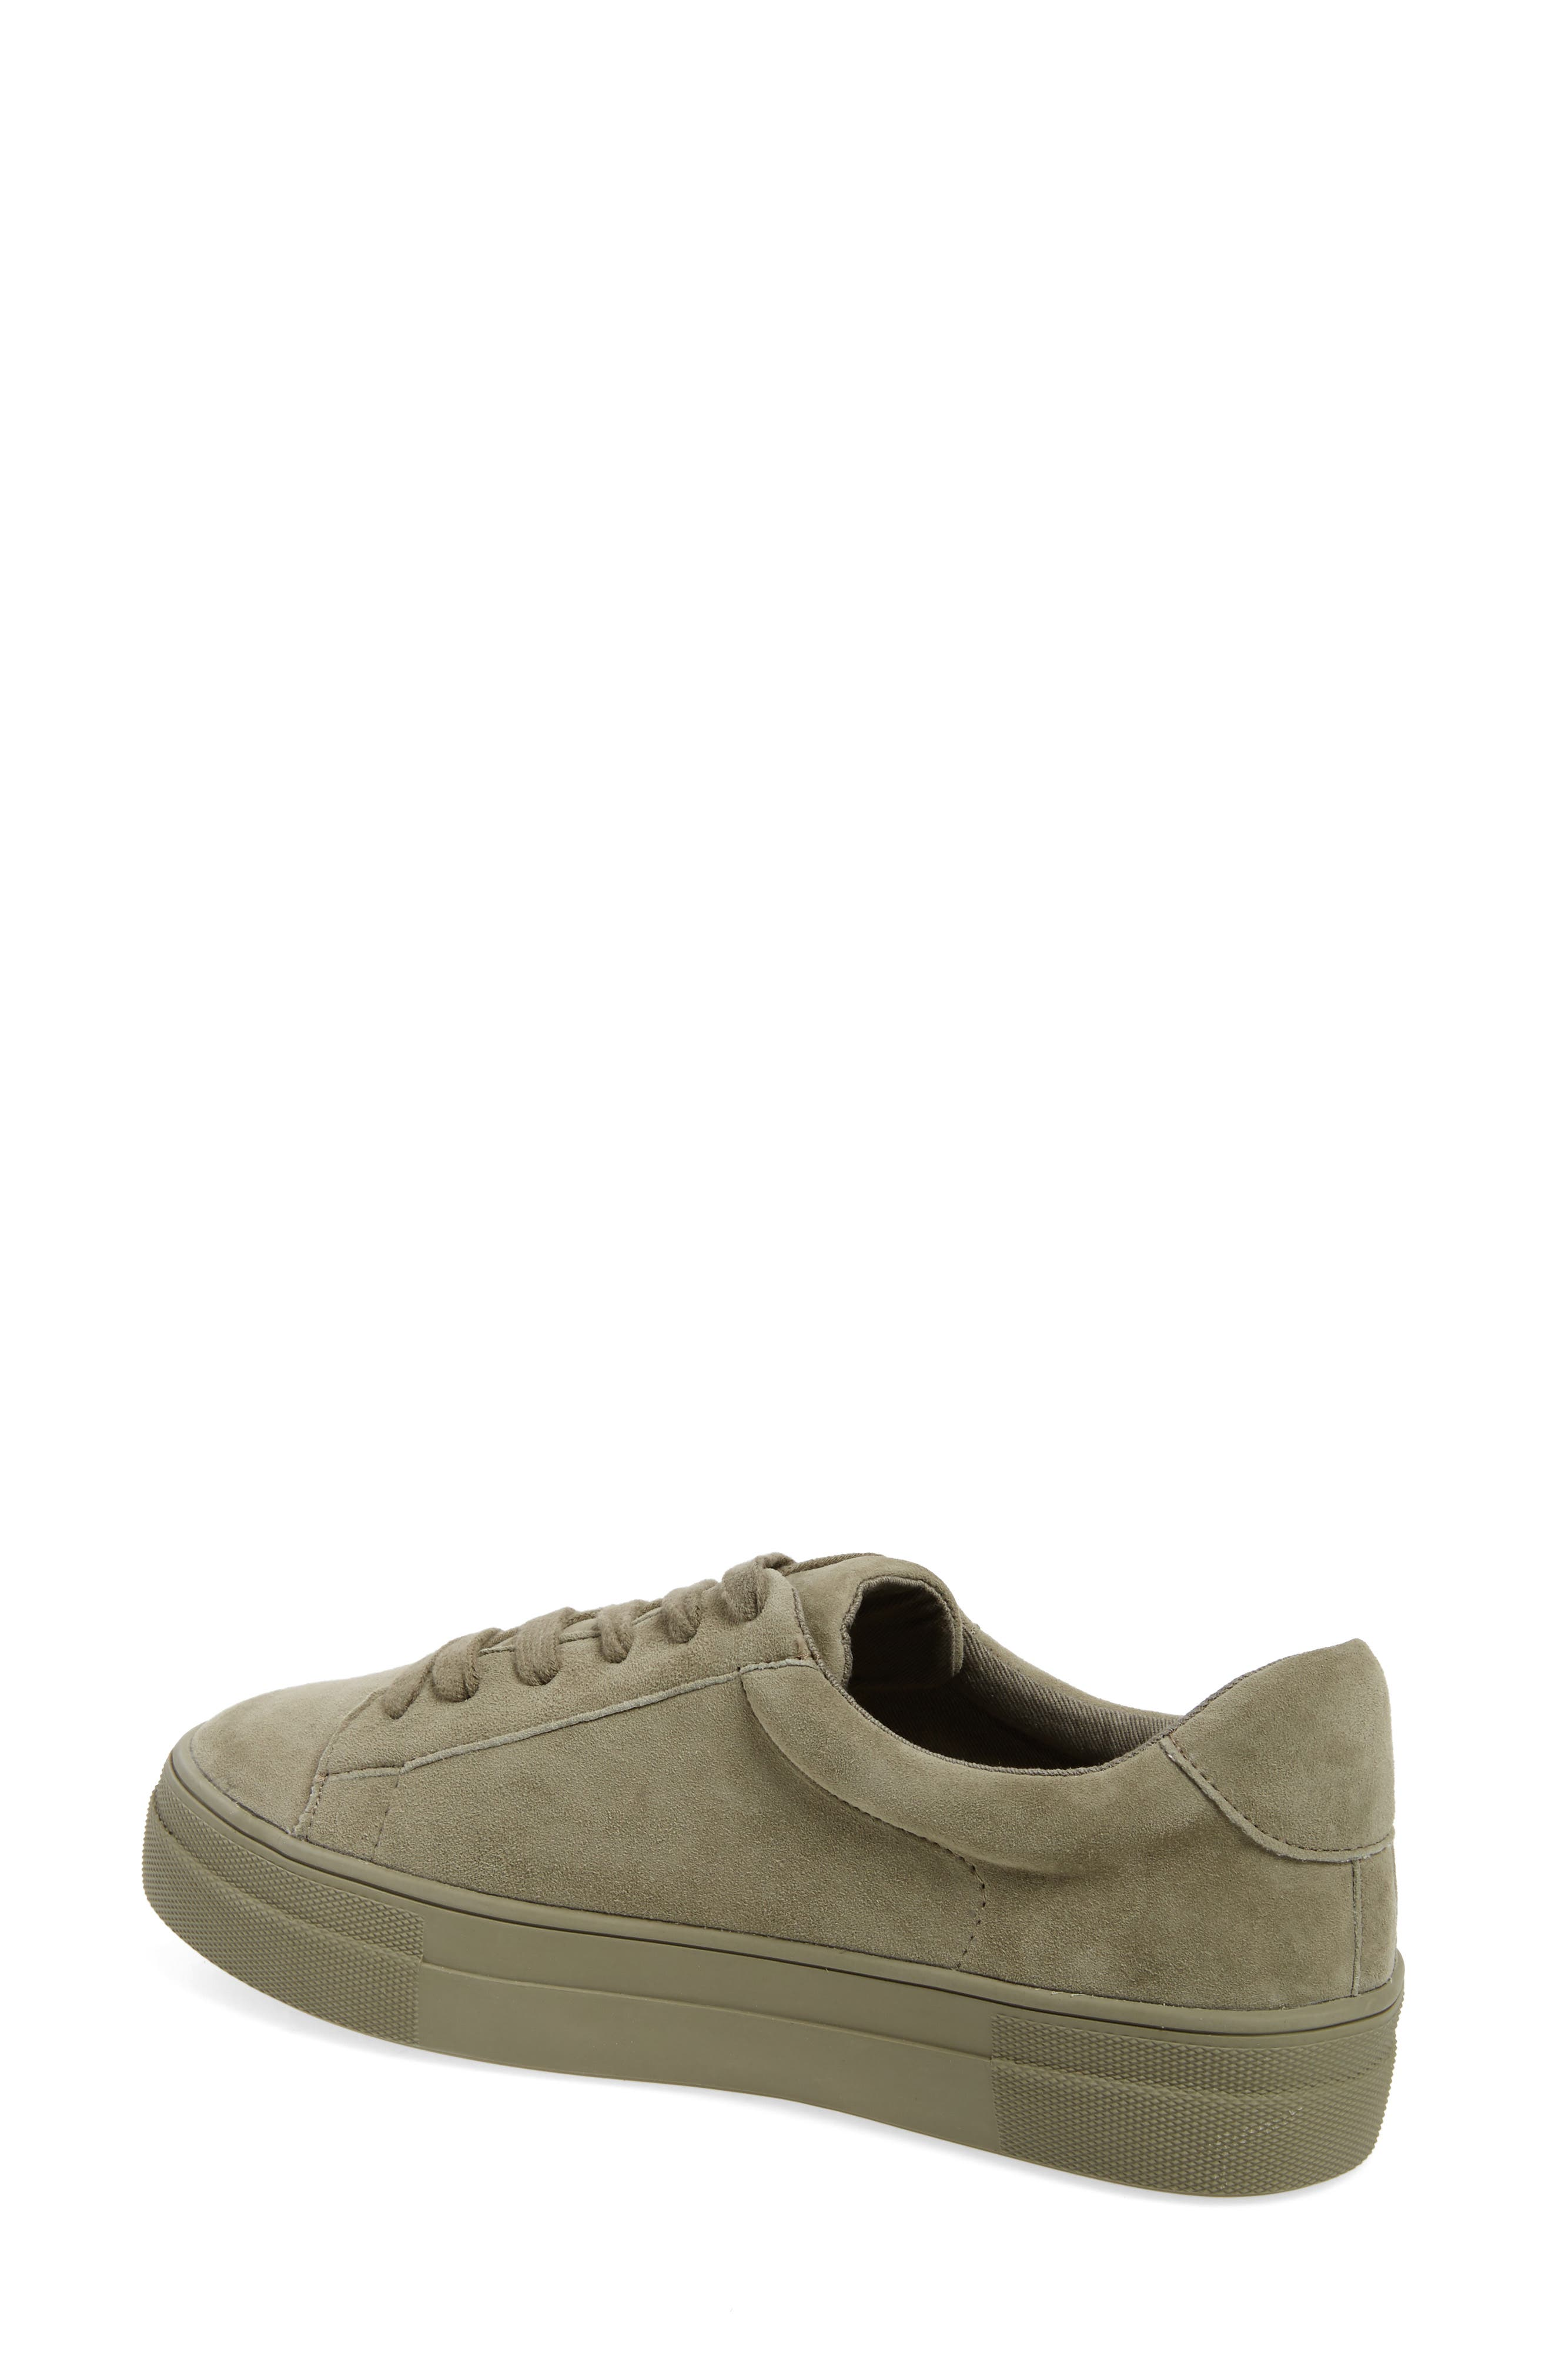 Gisela Low Top Sneaker,                             Alternate thumbnail 2, color,                             Olive Suede